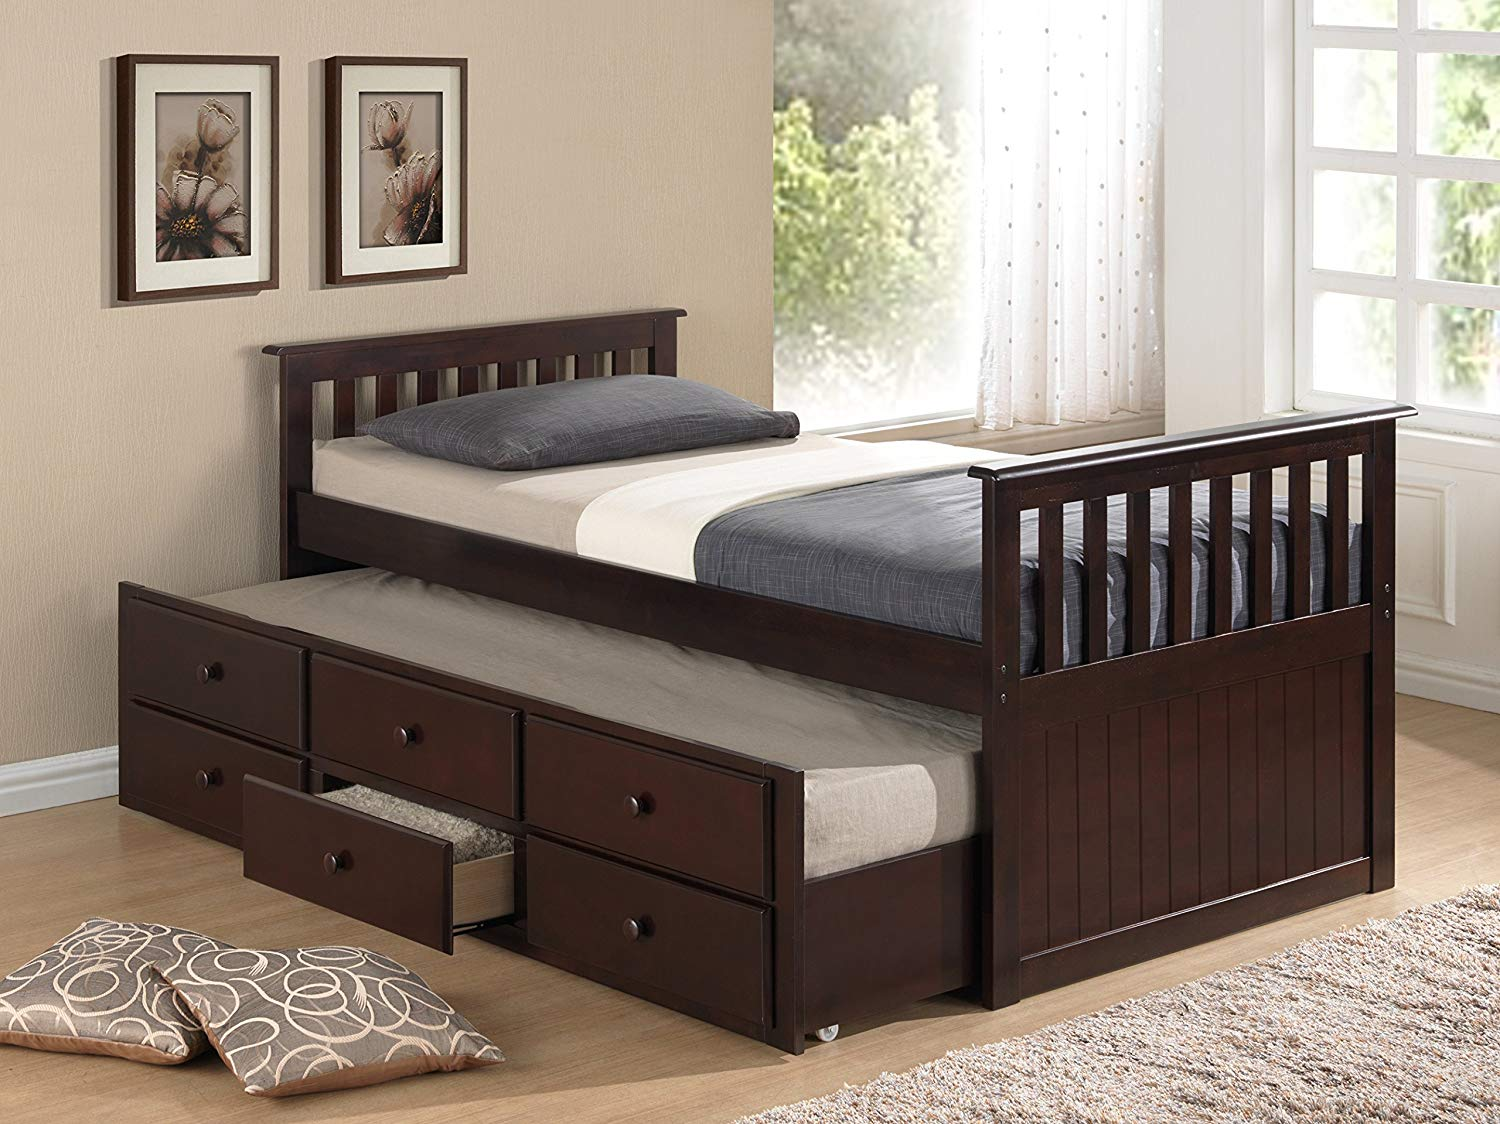 Image of: Top Twin Bed with Trundle